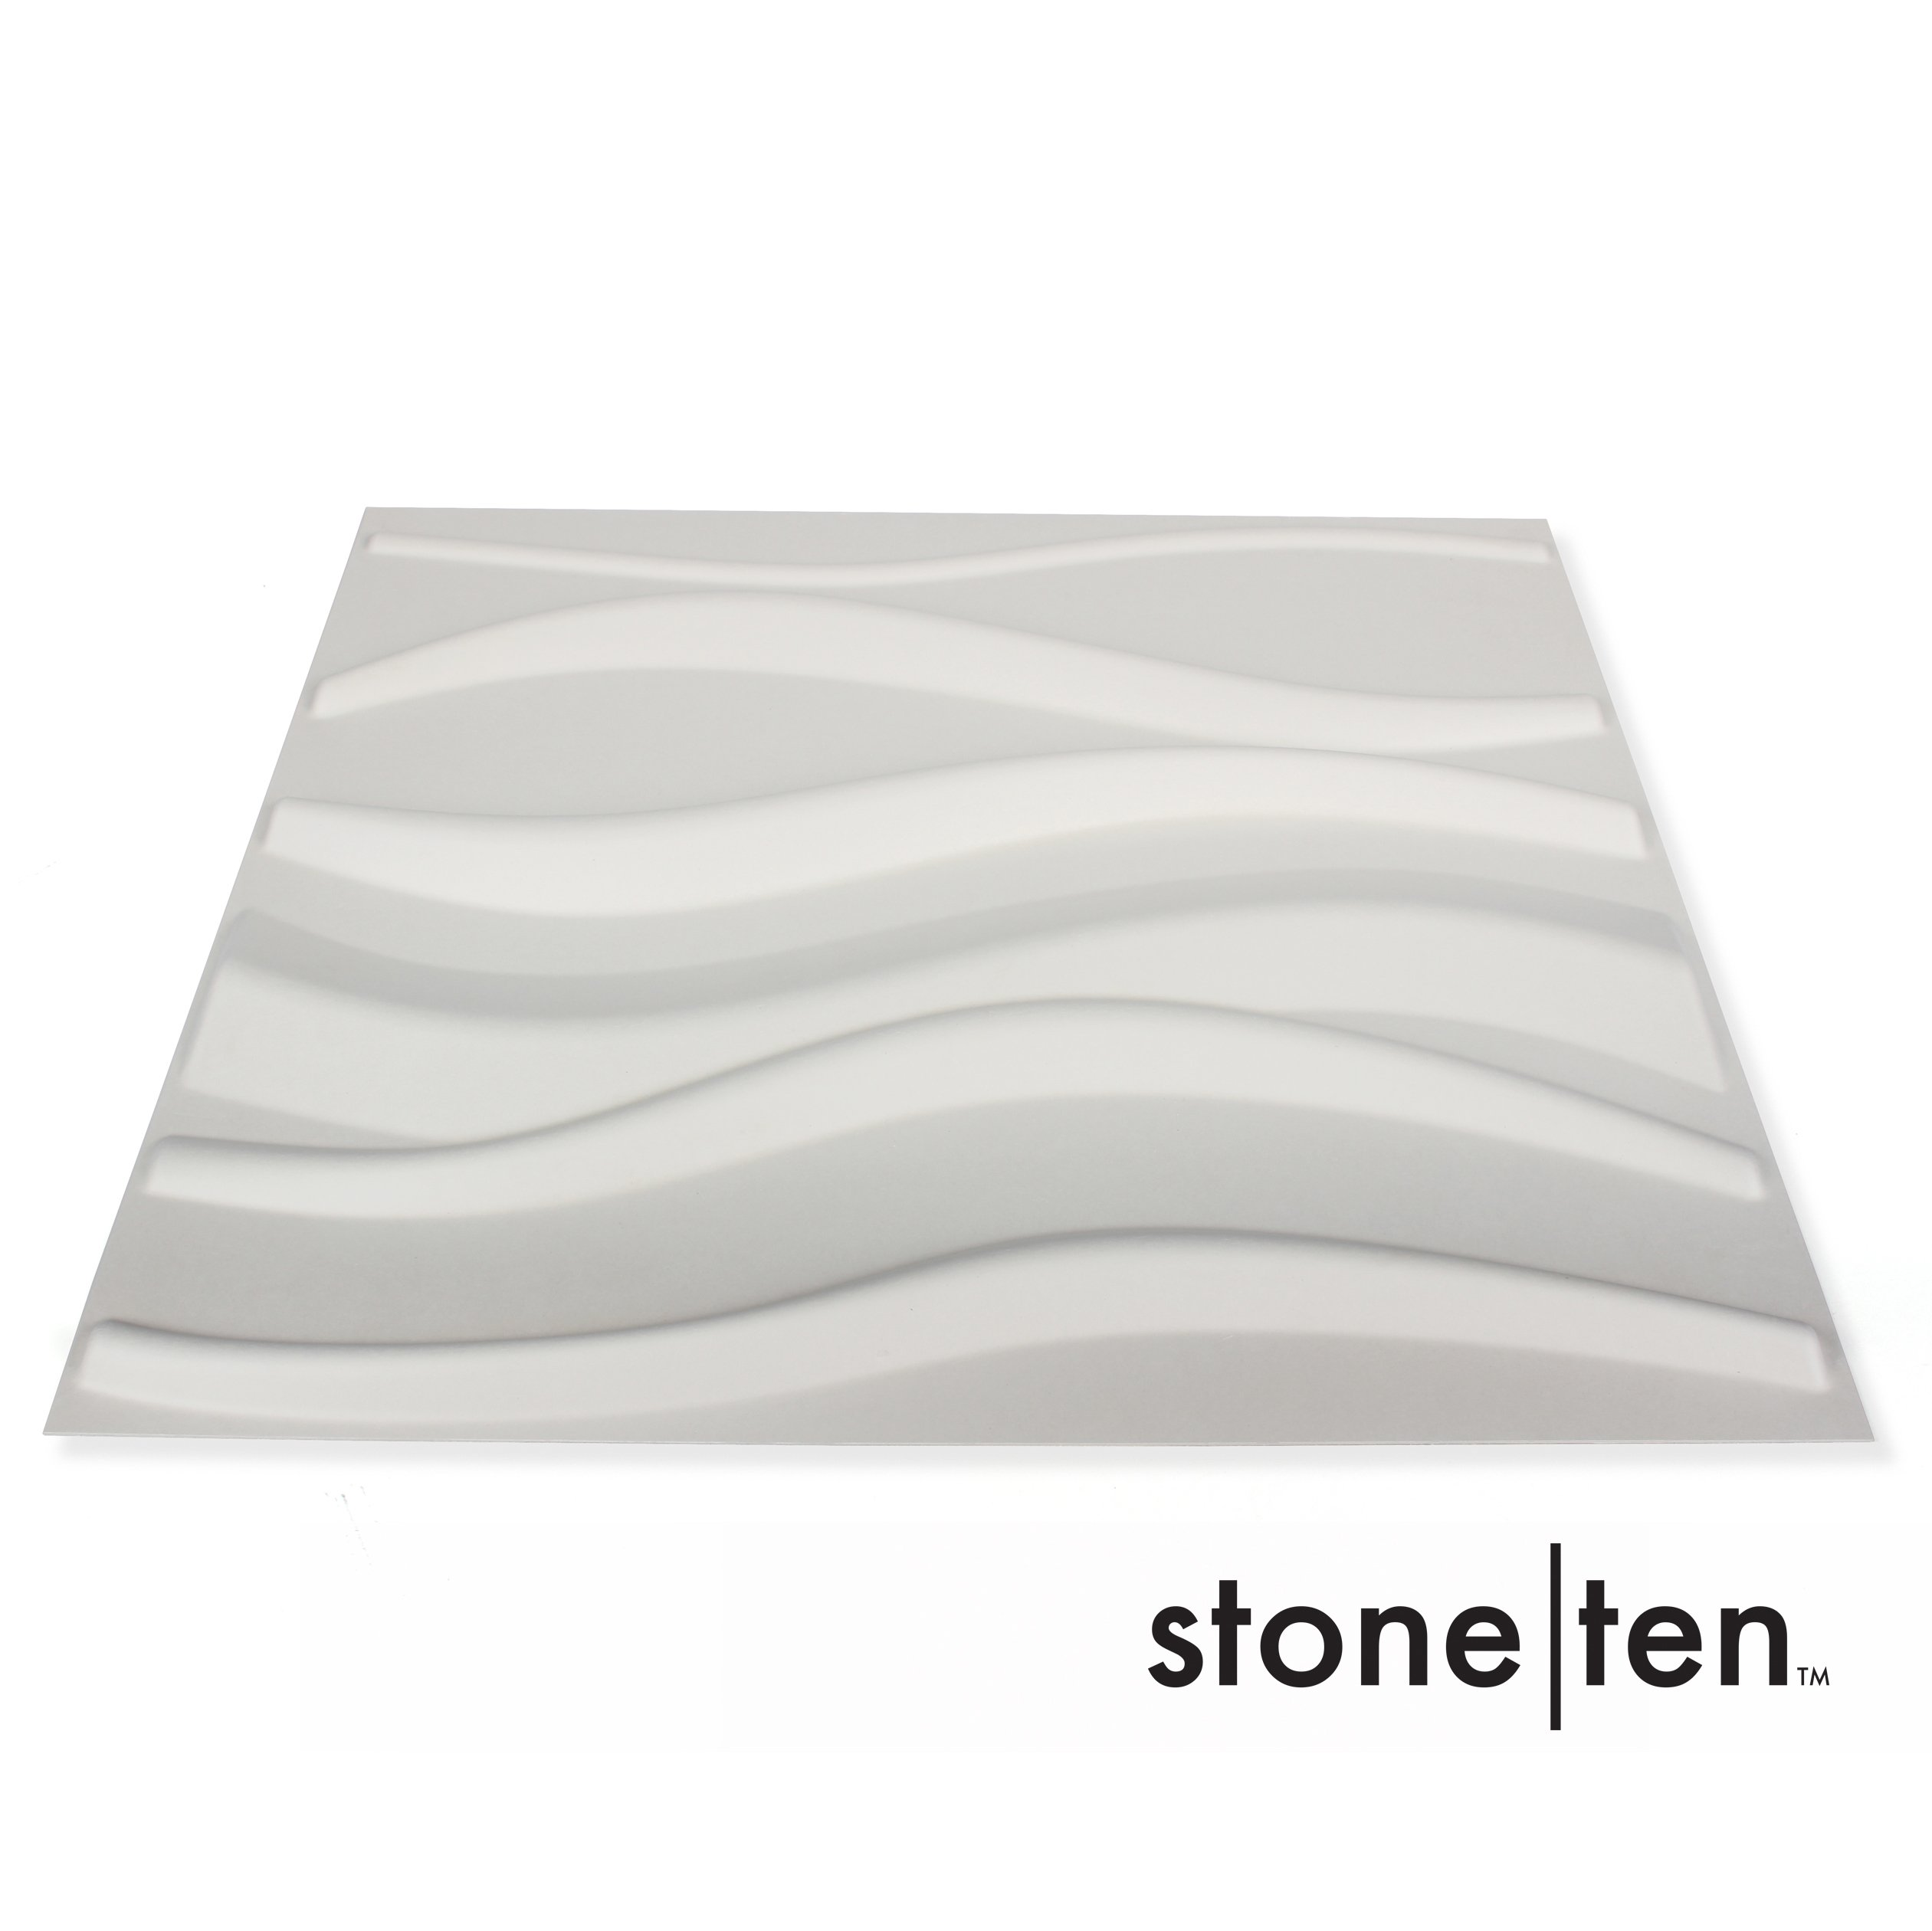 3D Wall Panels - Decorative Wall Panels - Textured Wall Paneling - Matte White Paintable 3D Wall Tiles (12, Ripple)